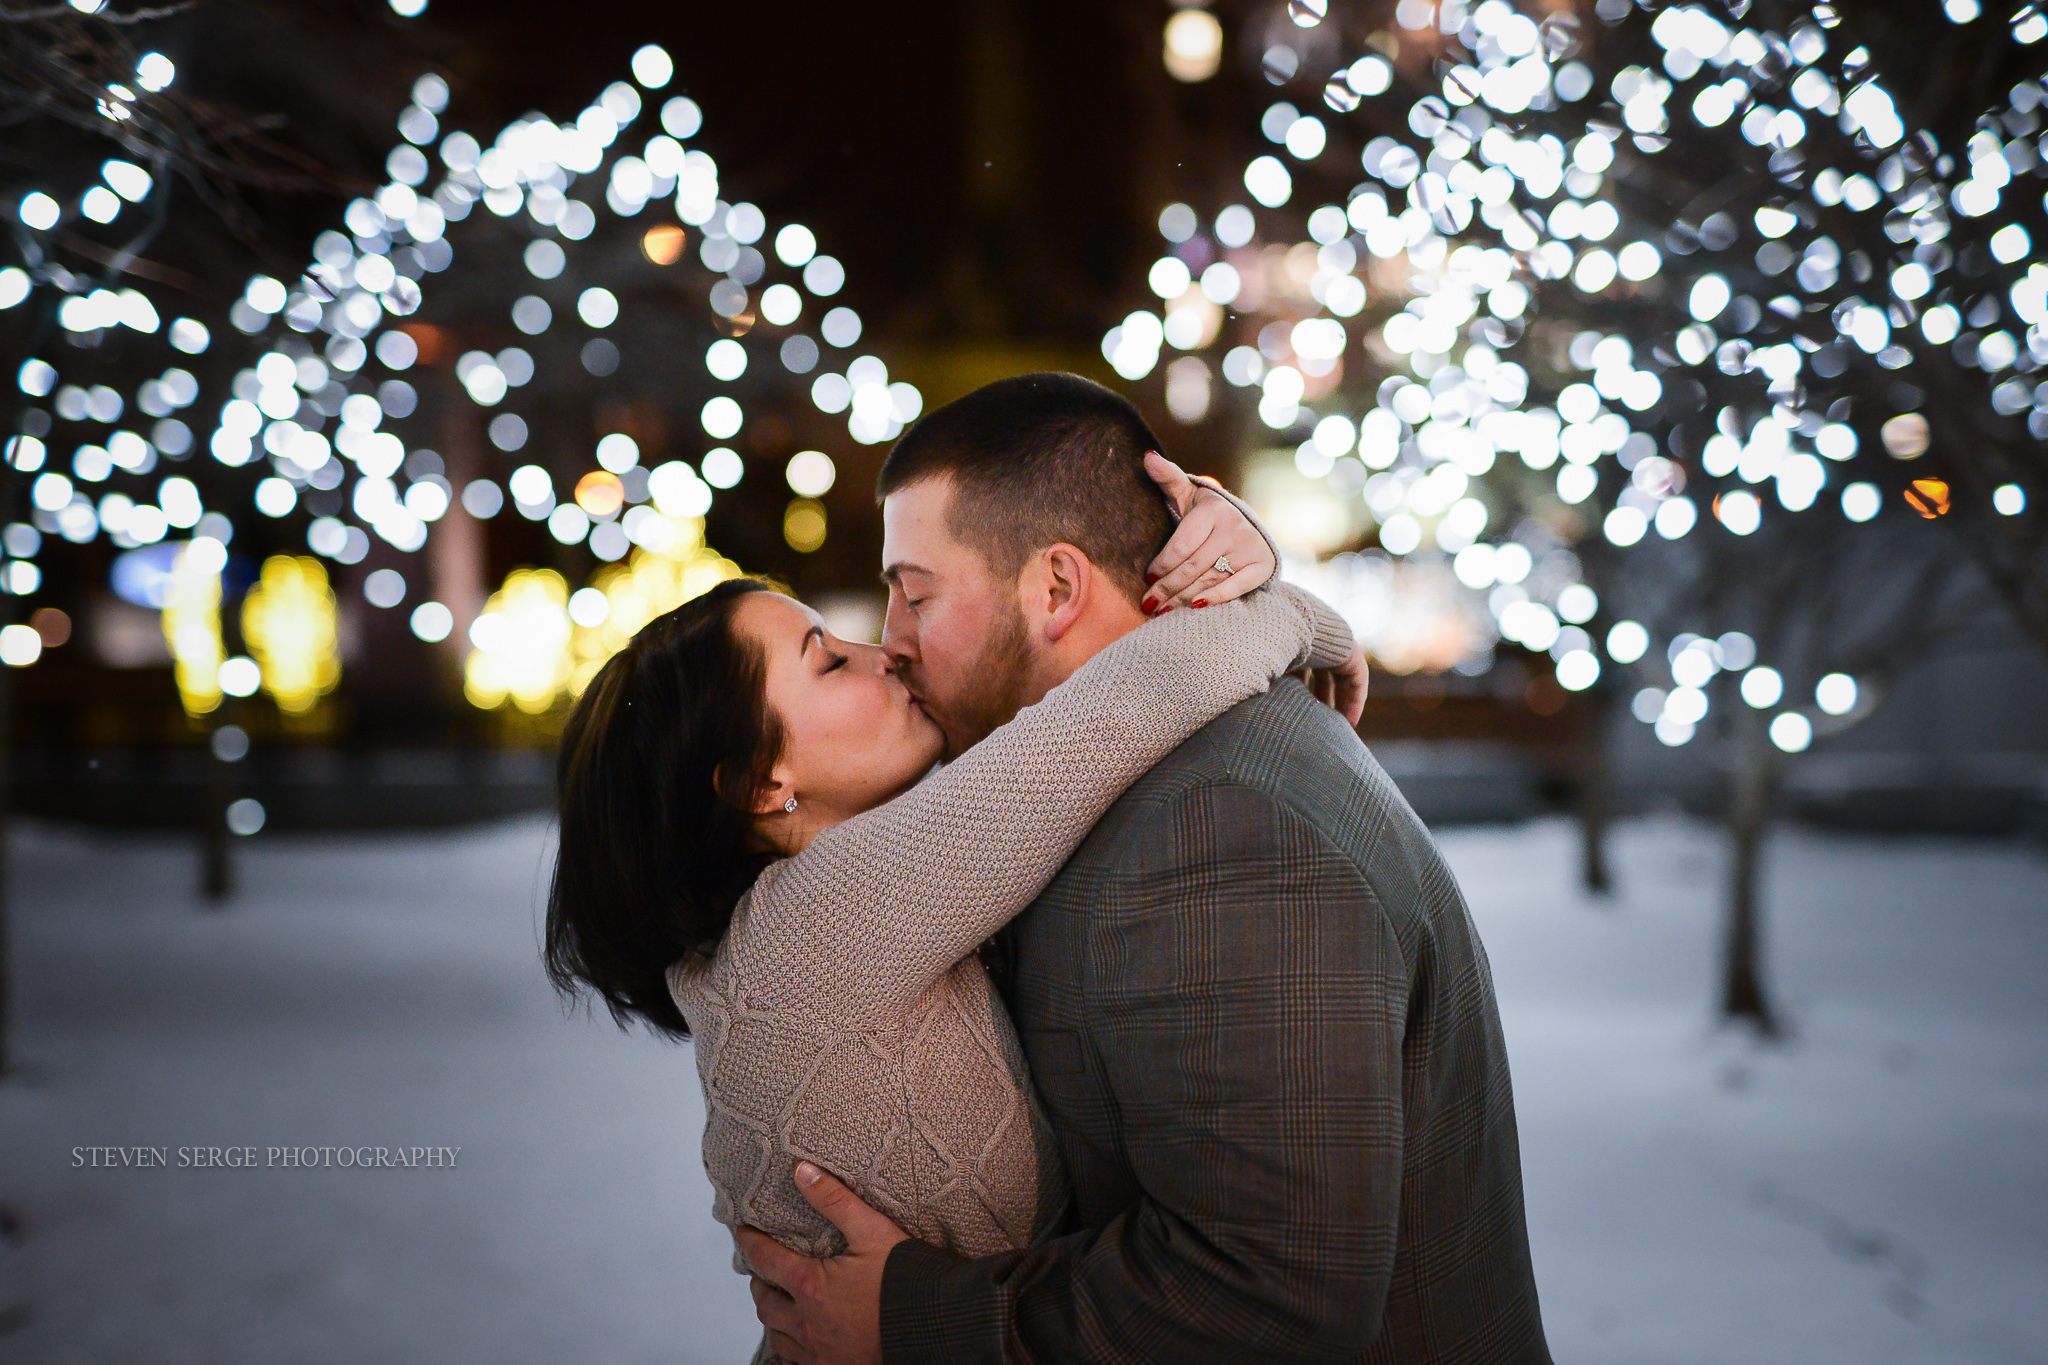 Lindsey-Cultural-Center-Scranton-Engagement-Wedding-Nepa-Photographer-Steamtown-Photography-1.jpg